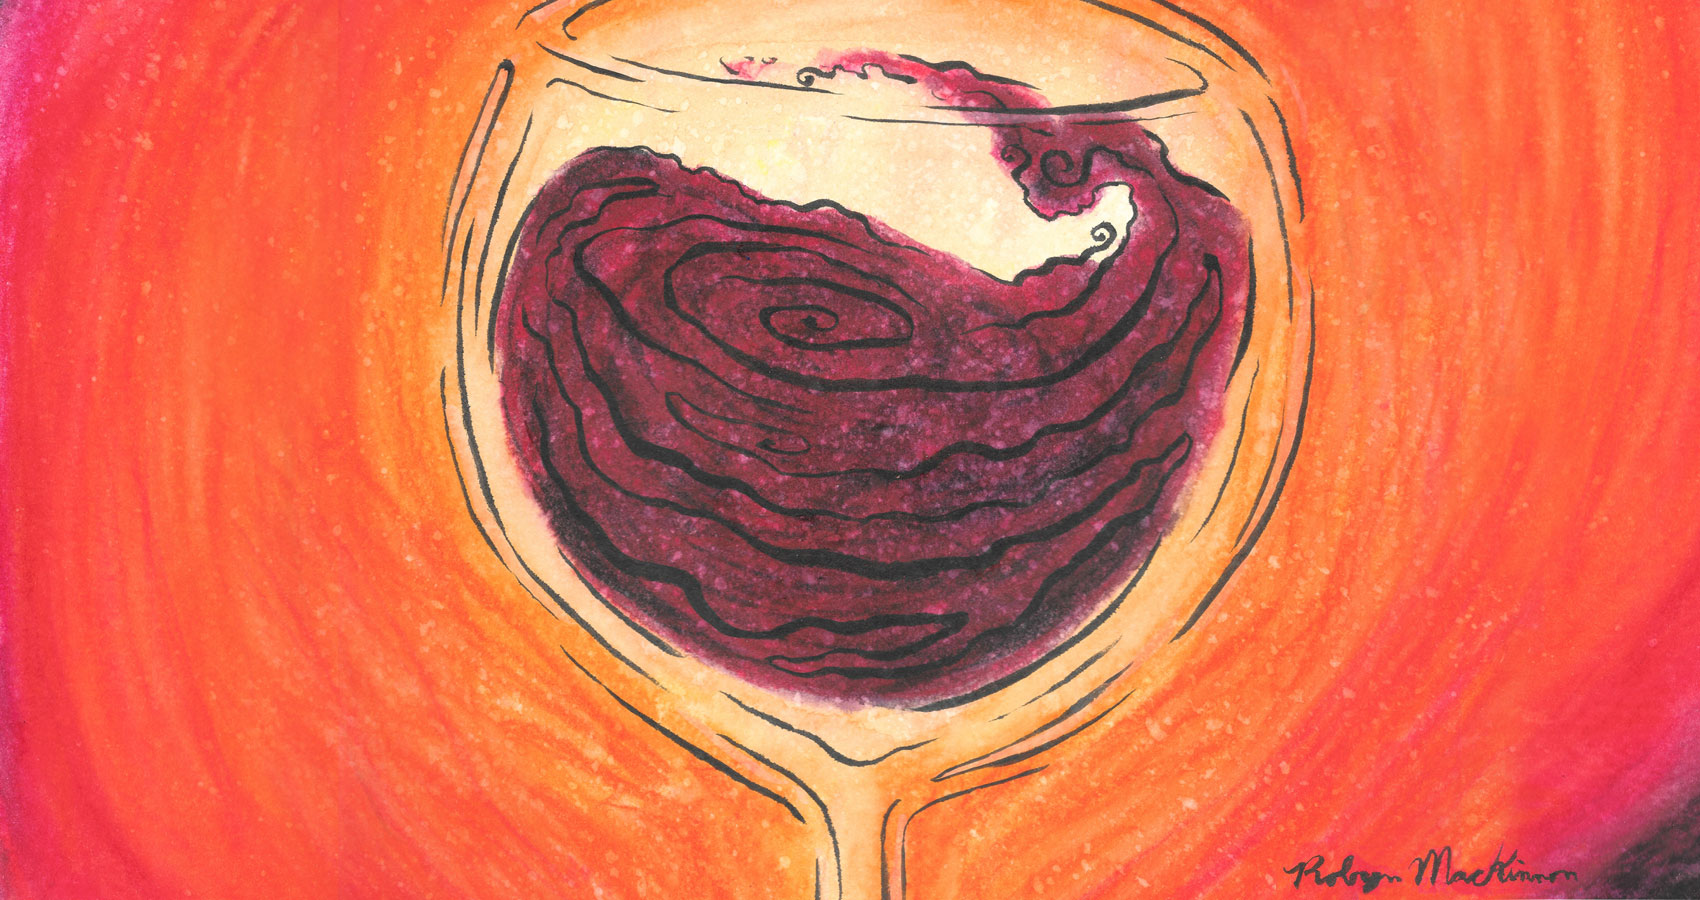 Election Wine, a haiku by Robyn MacKinnon at Spillwords.com